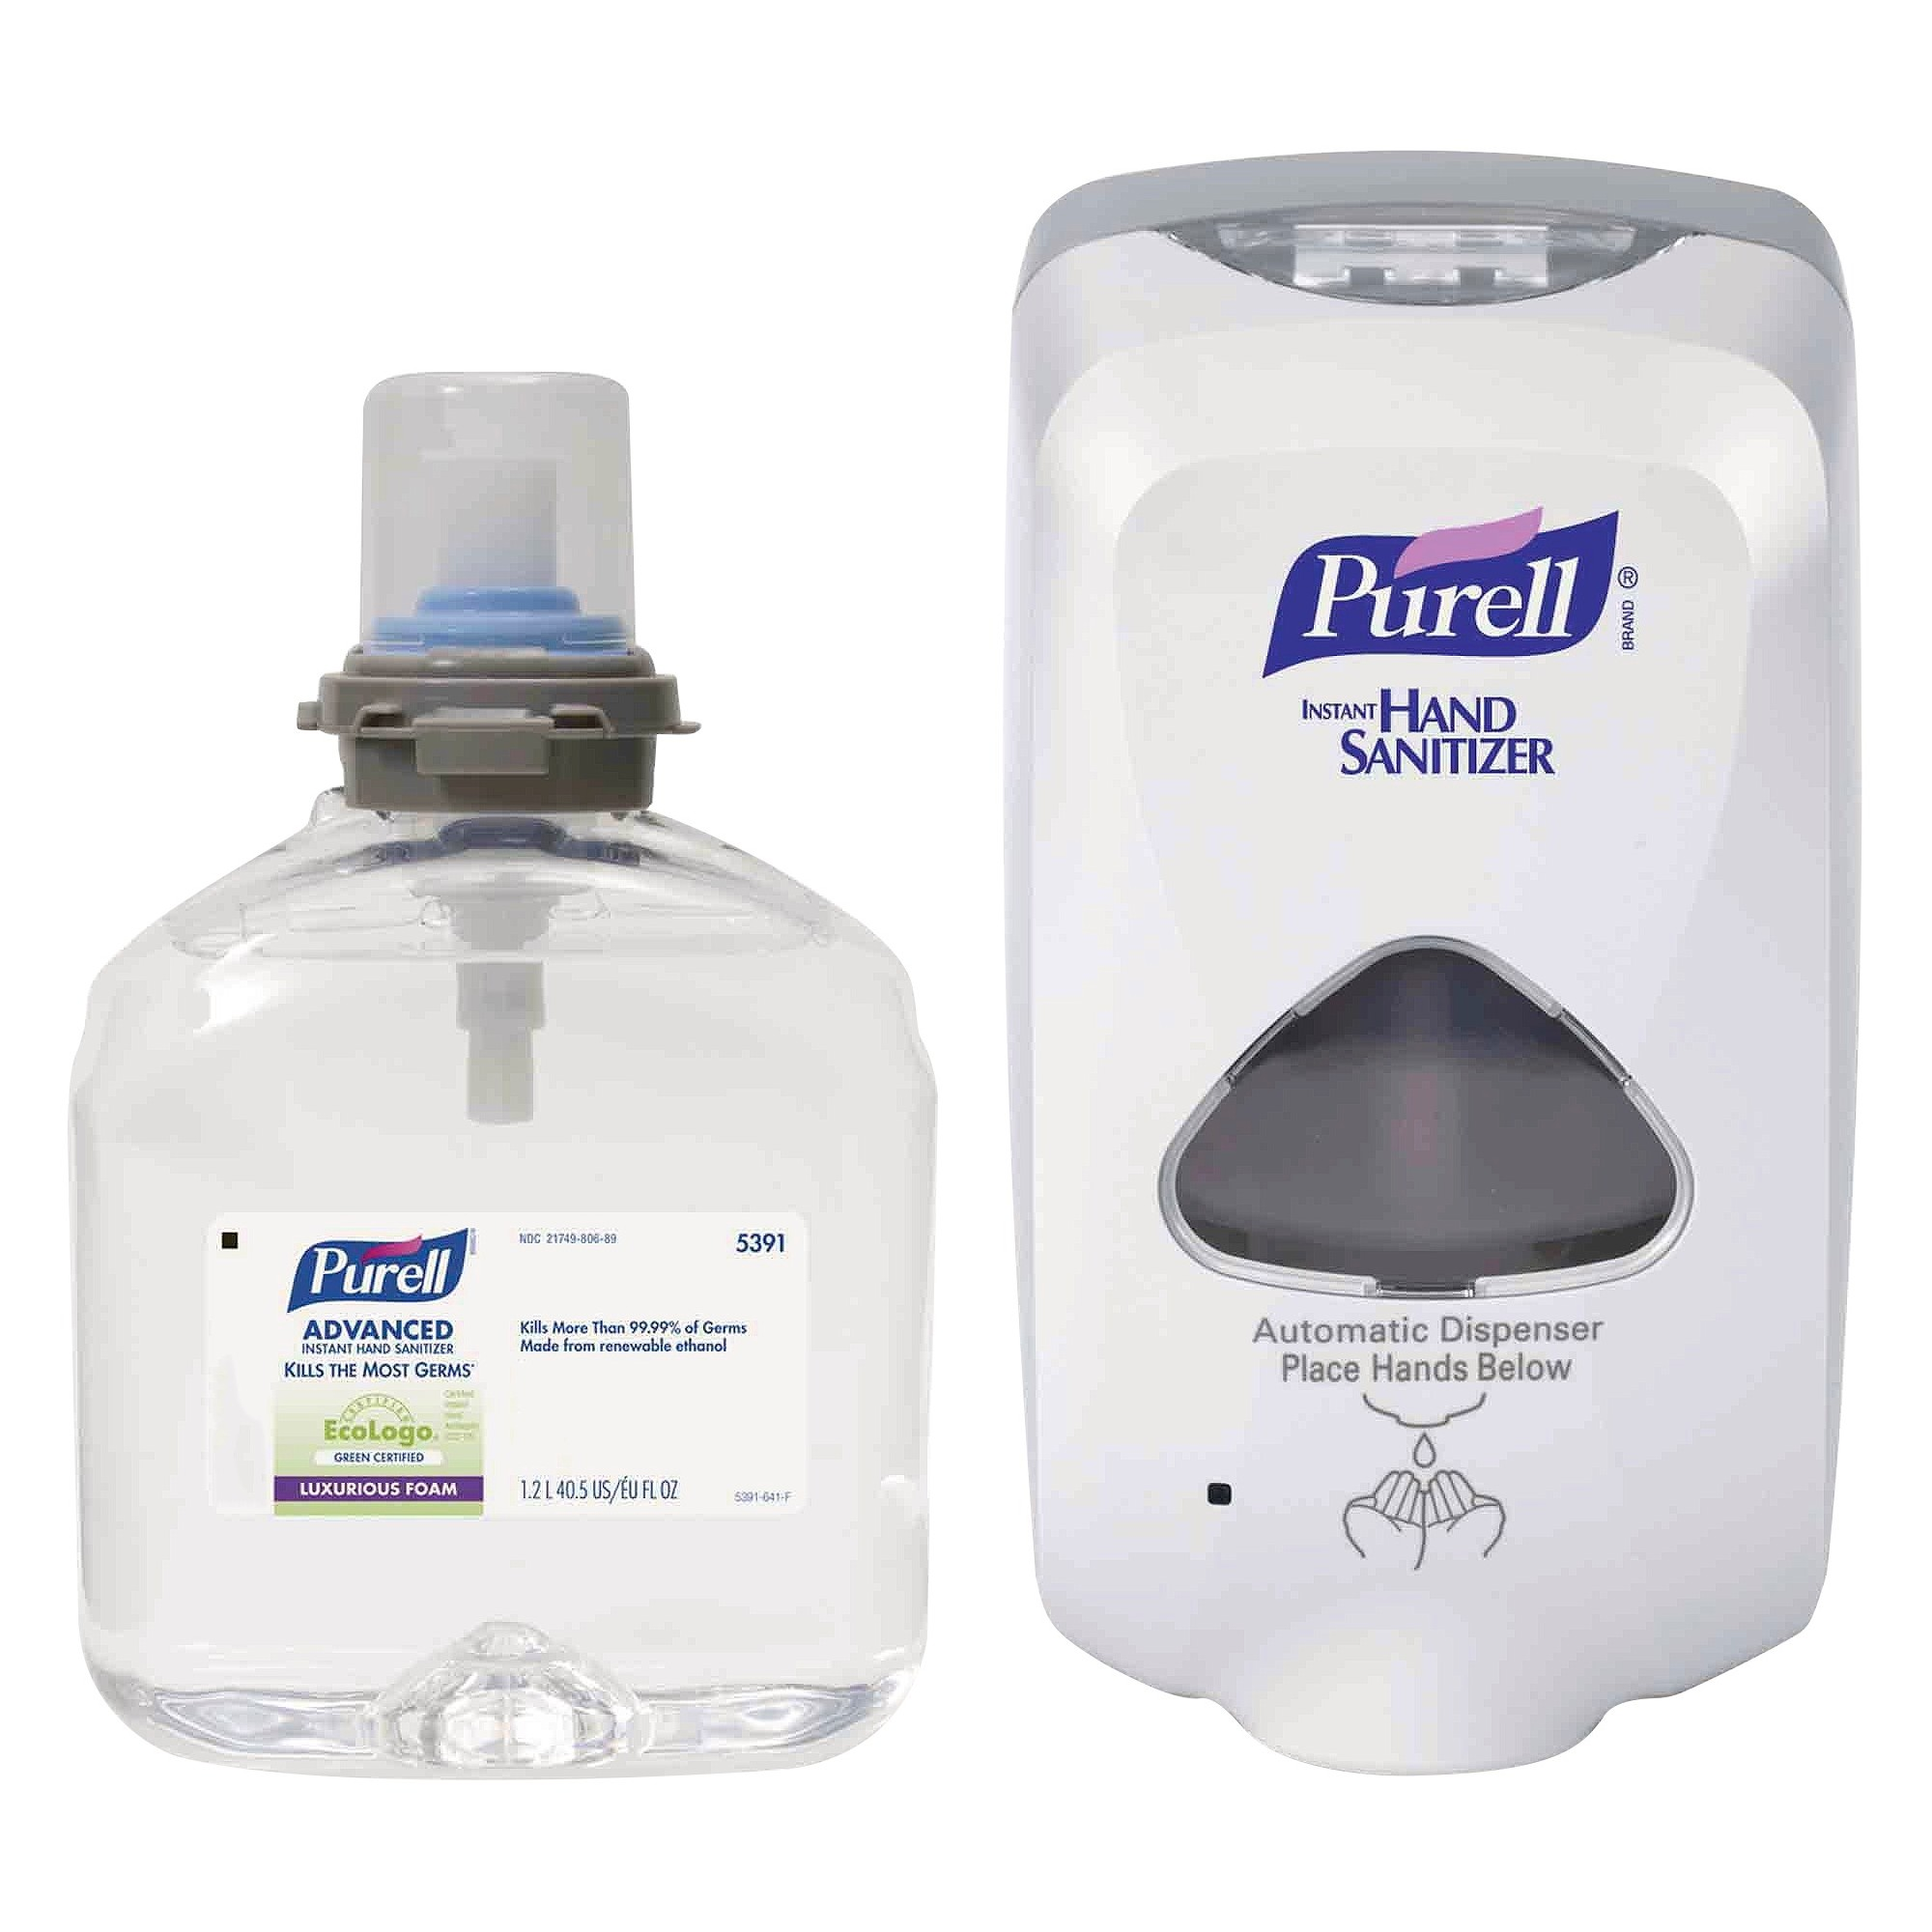 Purell Advanced Instant Hand Sanitizer Foam Tfx Starter Kit 1